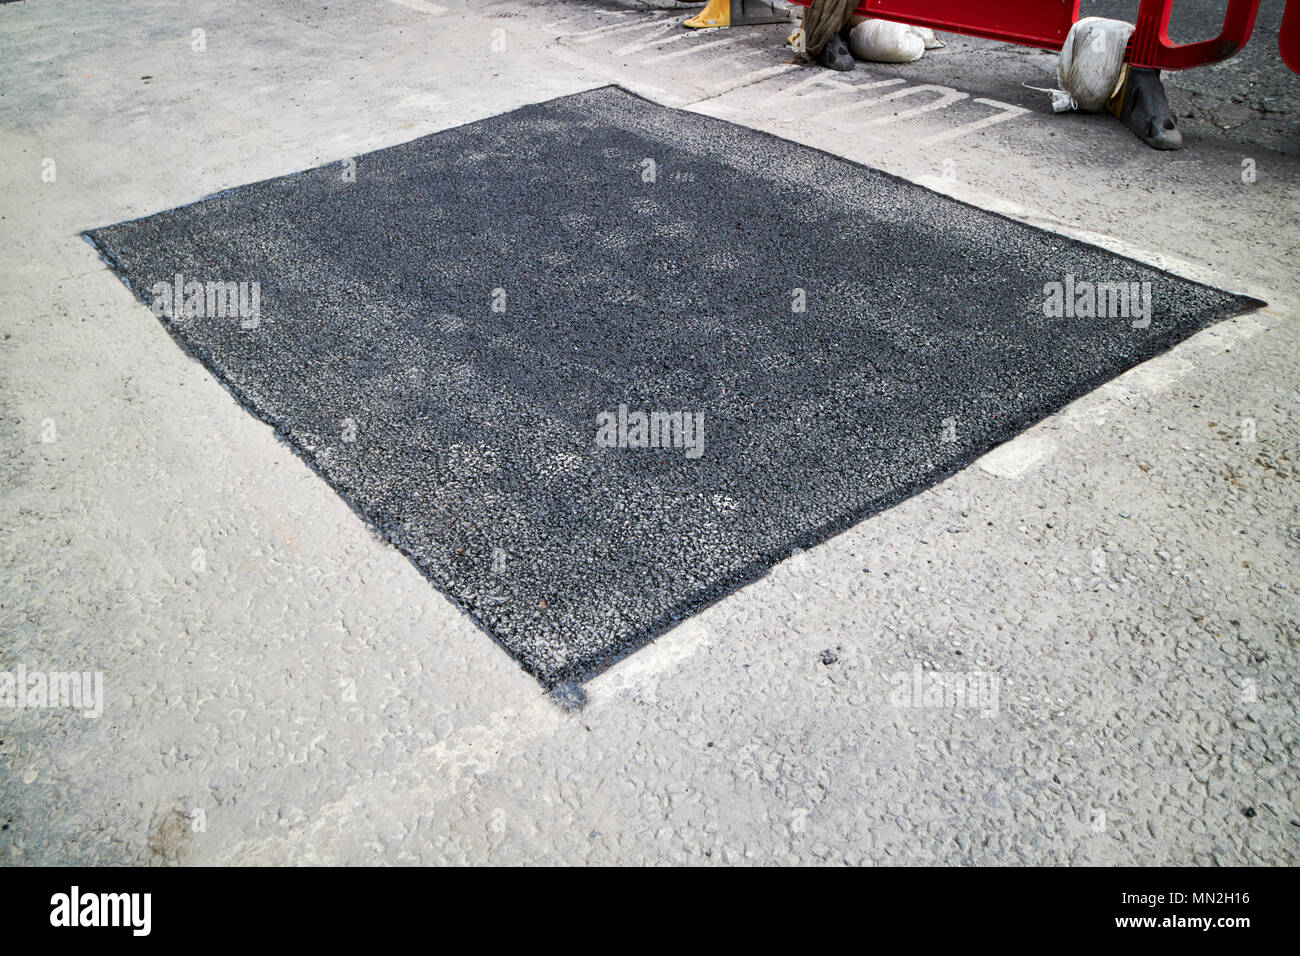 freshly laid section of tarmac to repair series of potholes in the road England UK - Stock Image